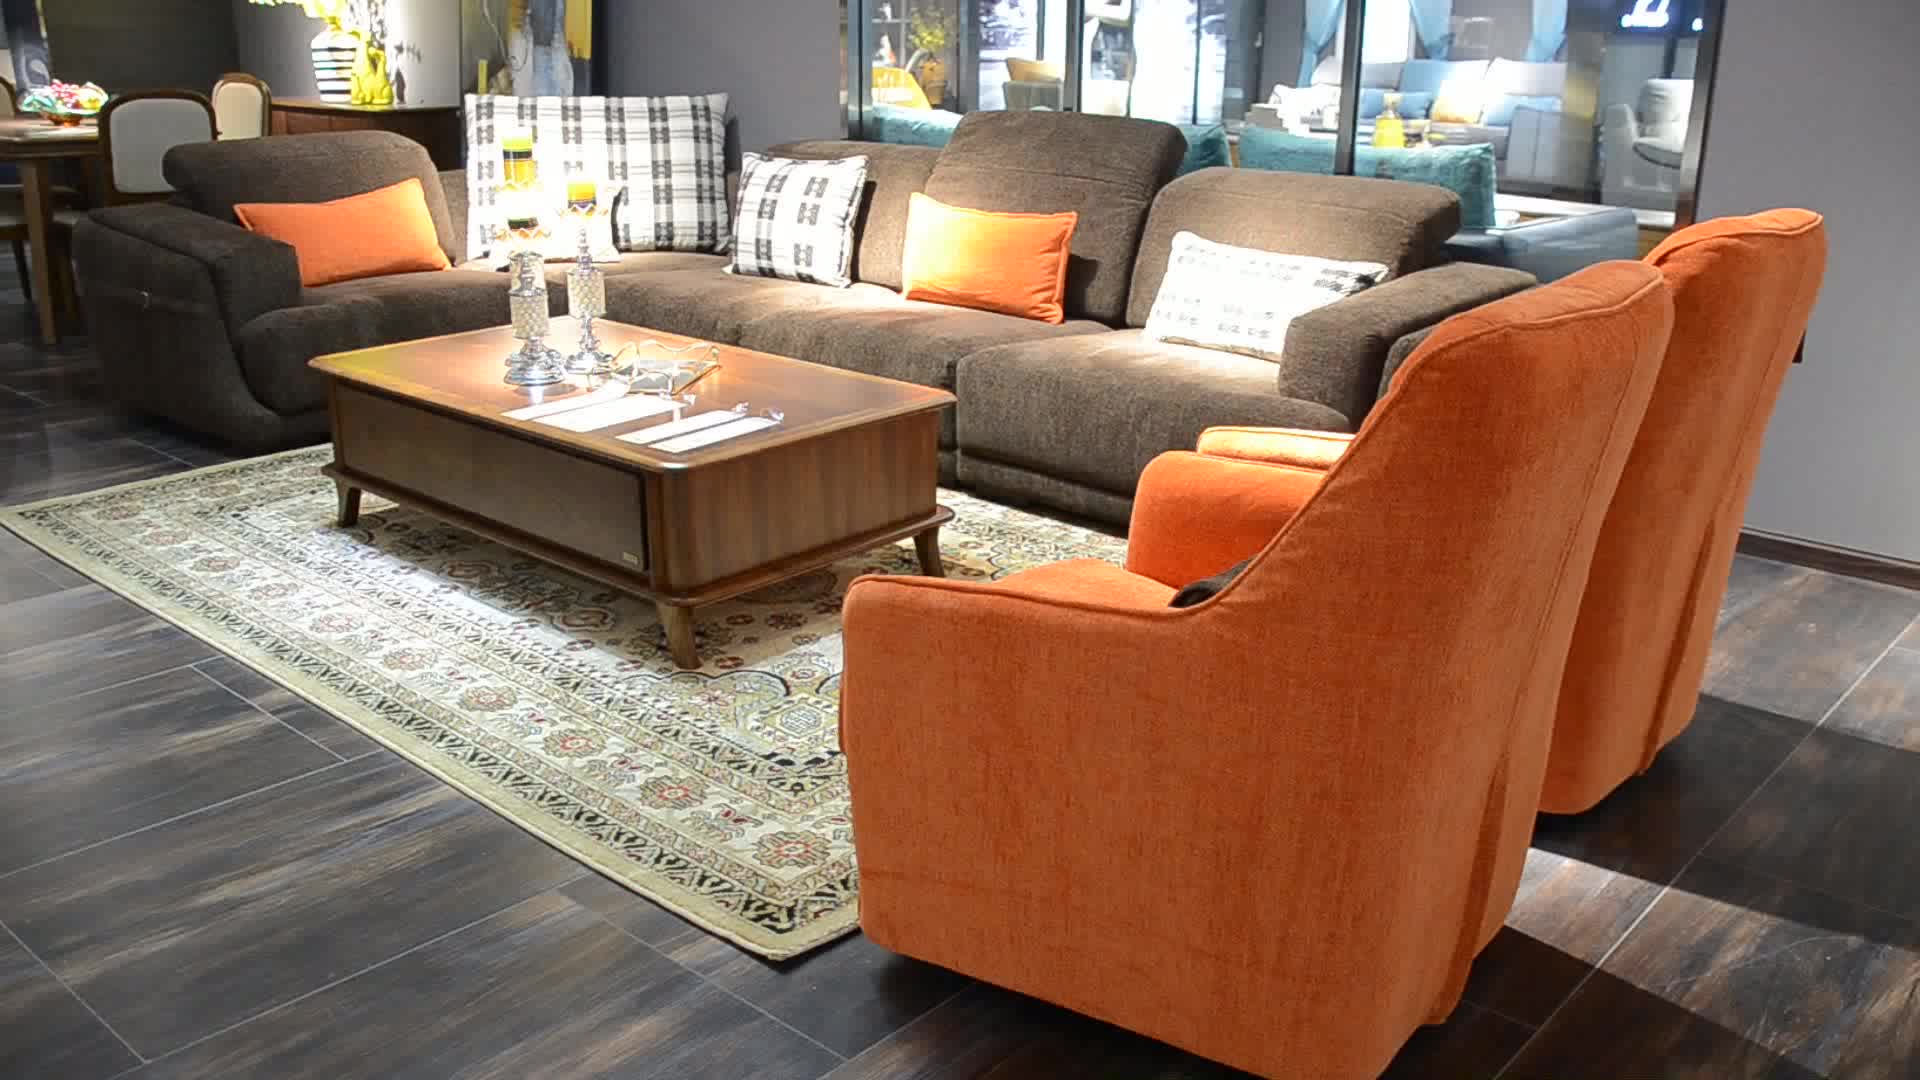 Sofa Set Discount Sale In Chennai Cheap Sectional Furniture Modern High Back Single Seater